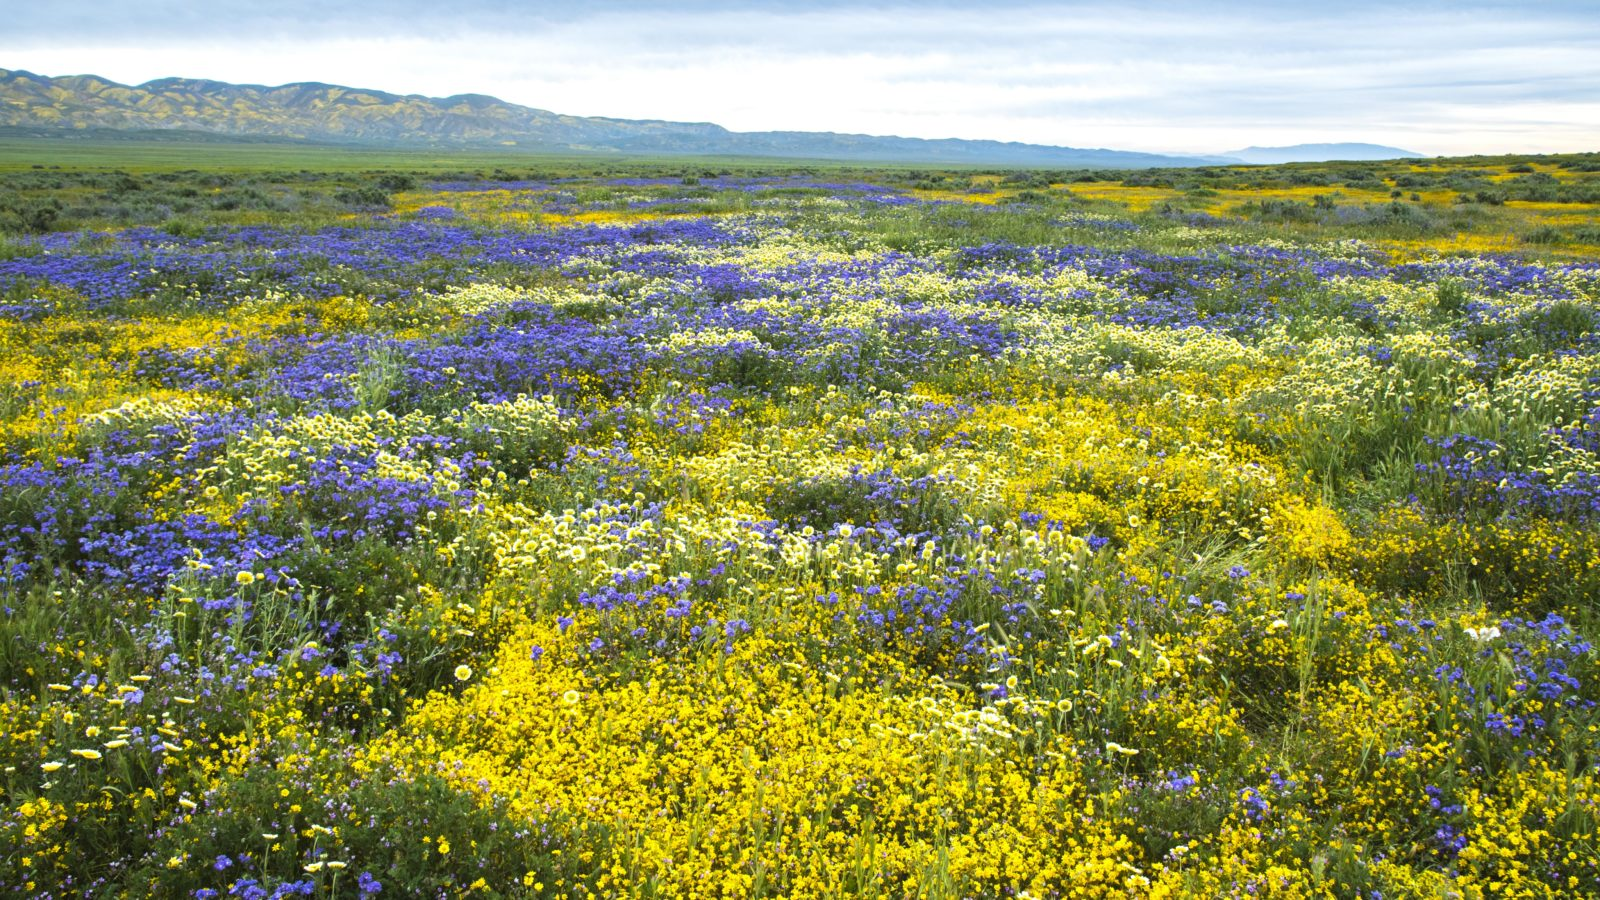 Super Bloom!